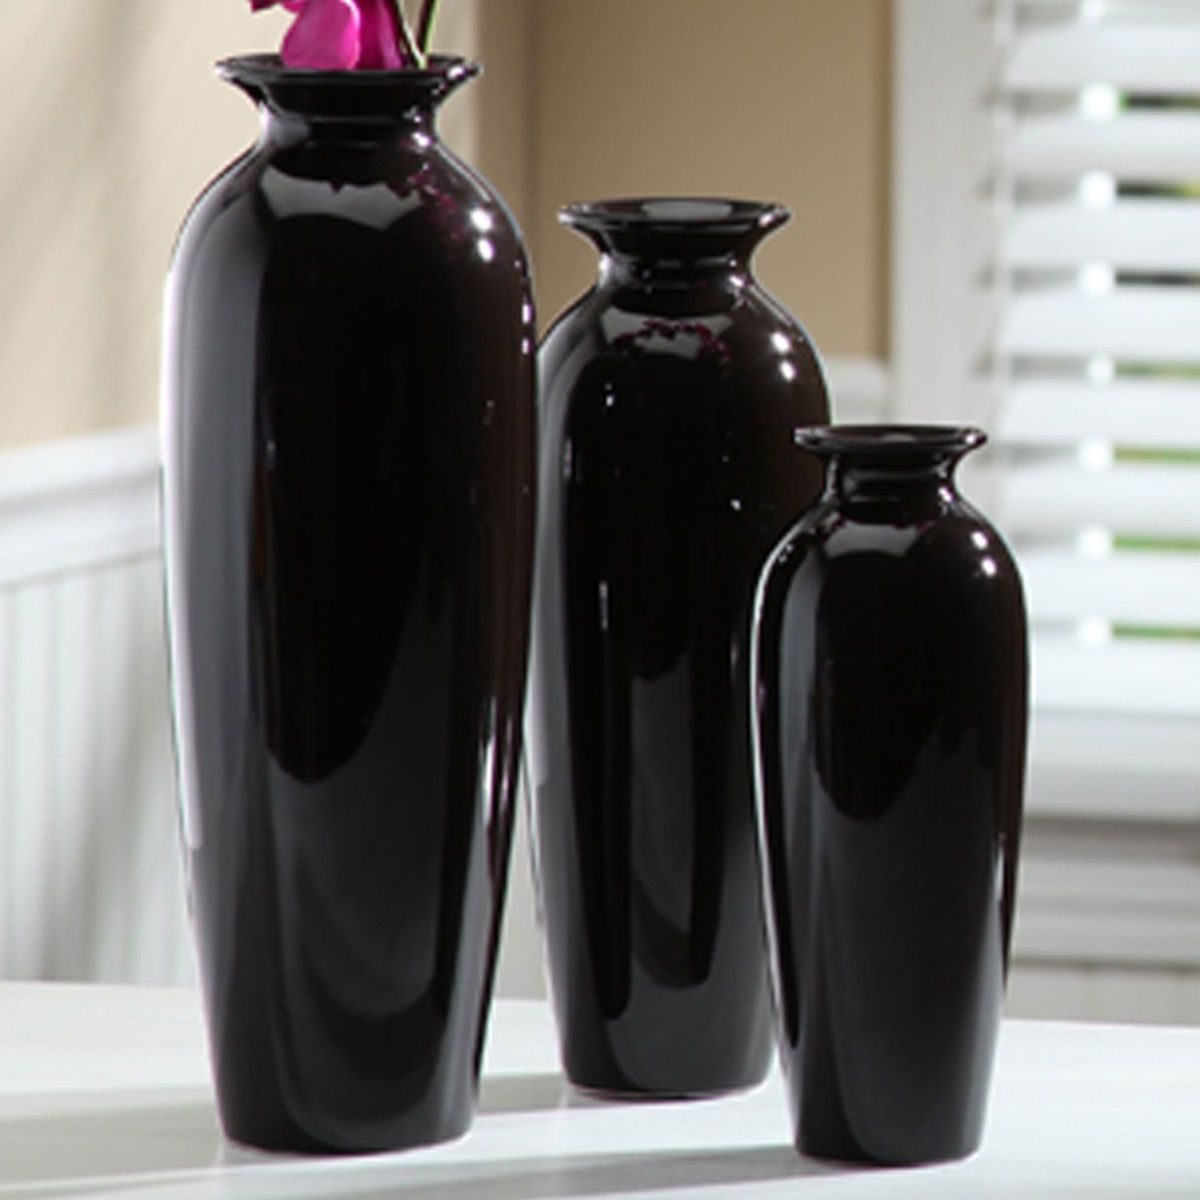 Hosley ceramic vase set black large medium small indiana usa elegant